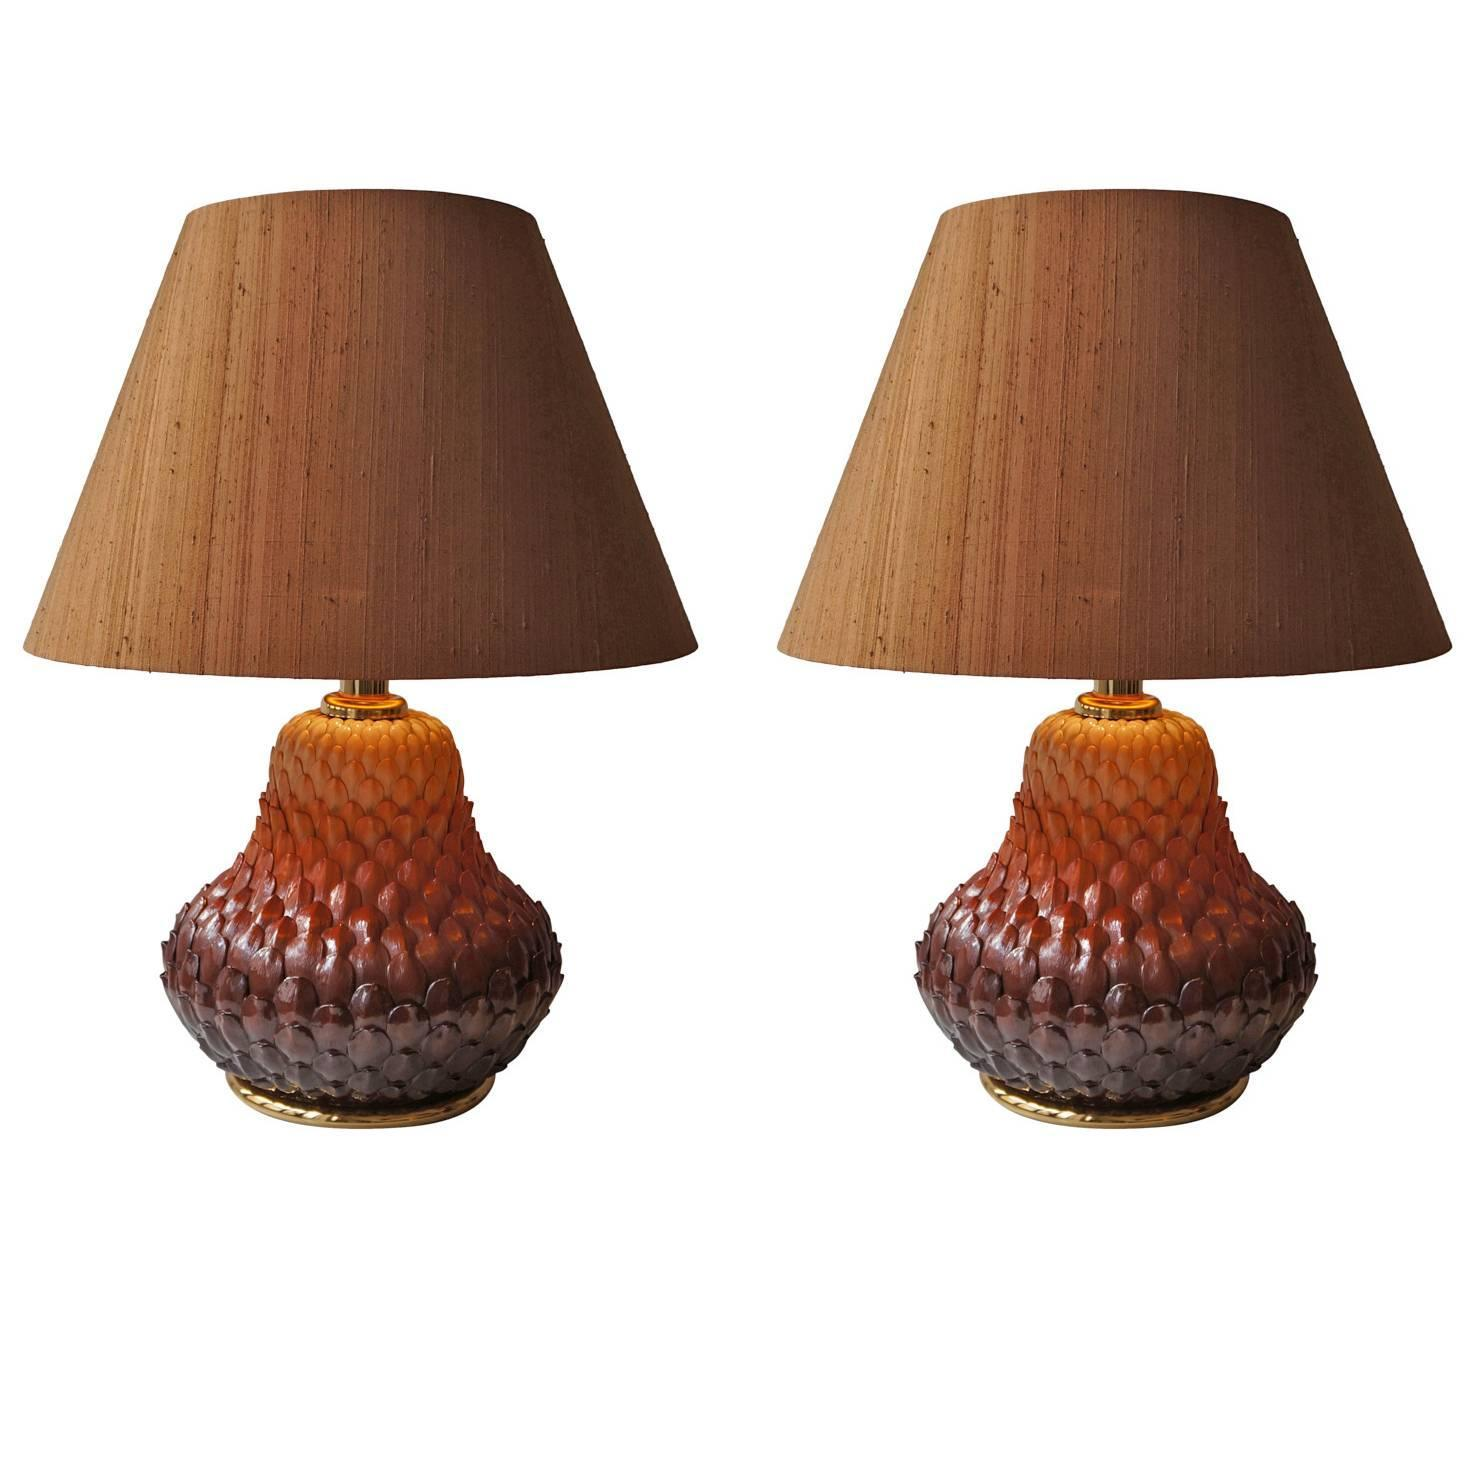 Pair Of Ceramic Table Lamps For Sale At 1stdibs